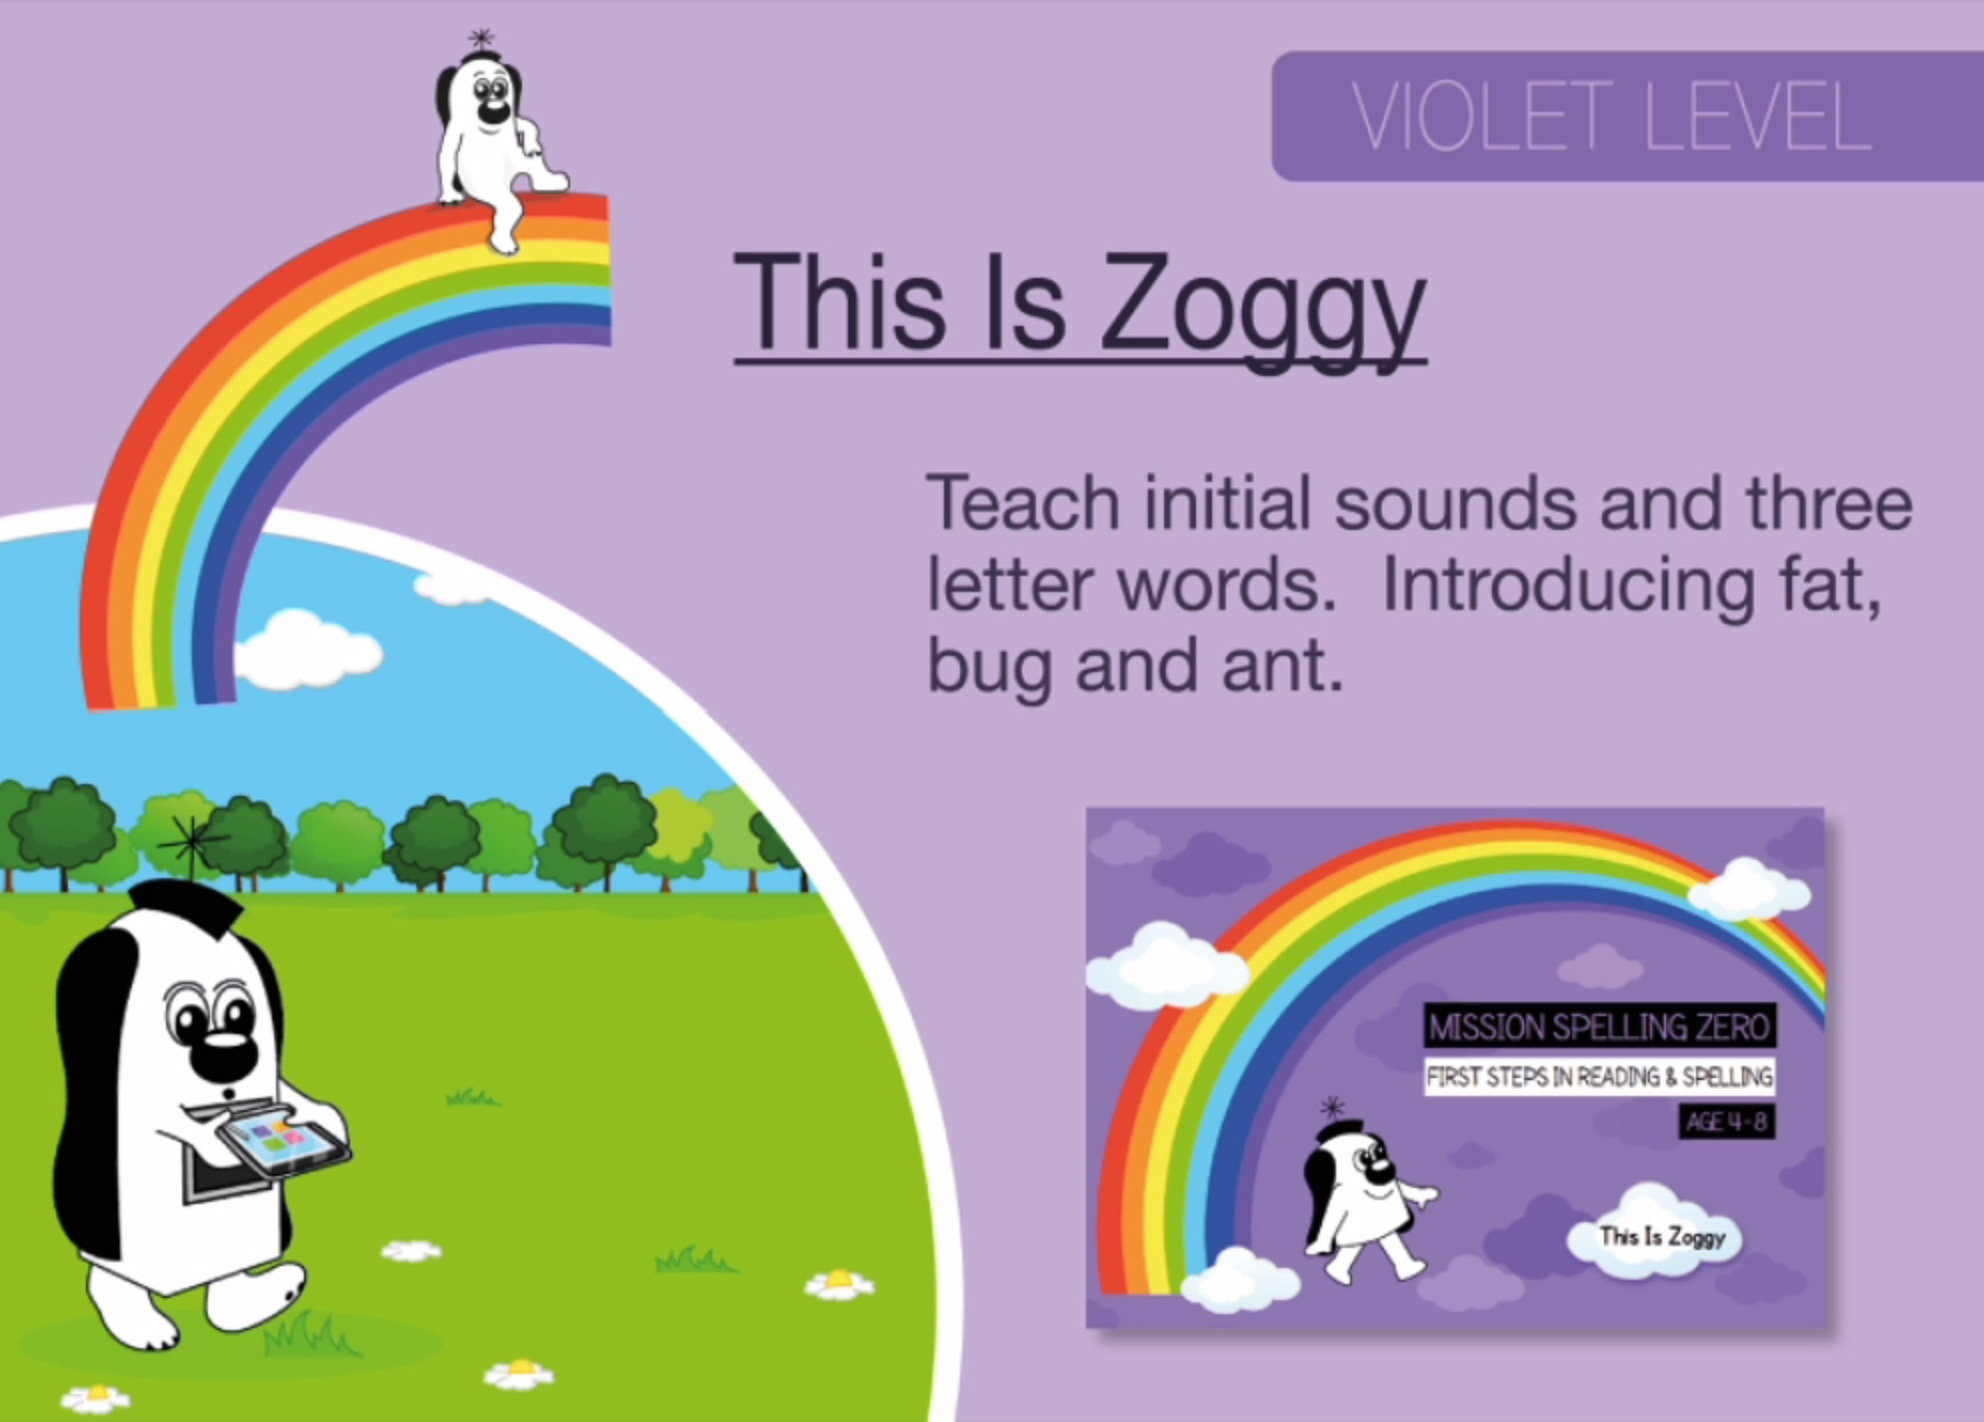 Initial Sounds & Three Letter Words (This Is Zoggy)